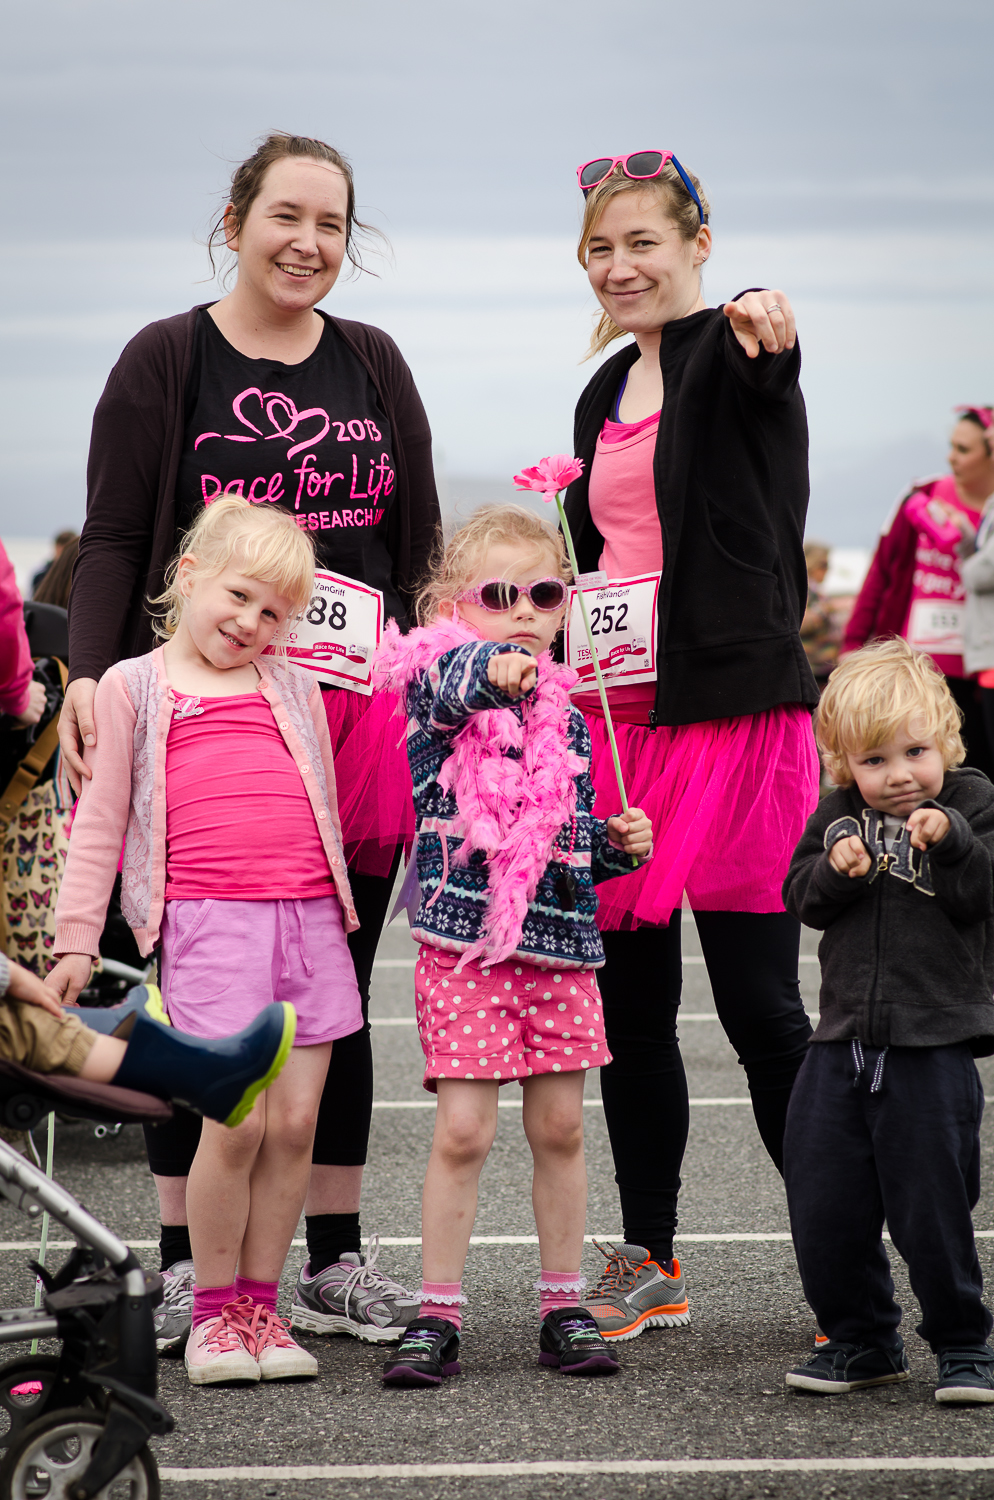 Race for life blog 2015-4.jpg